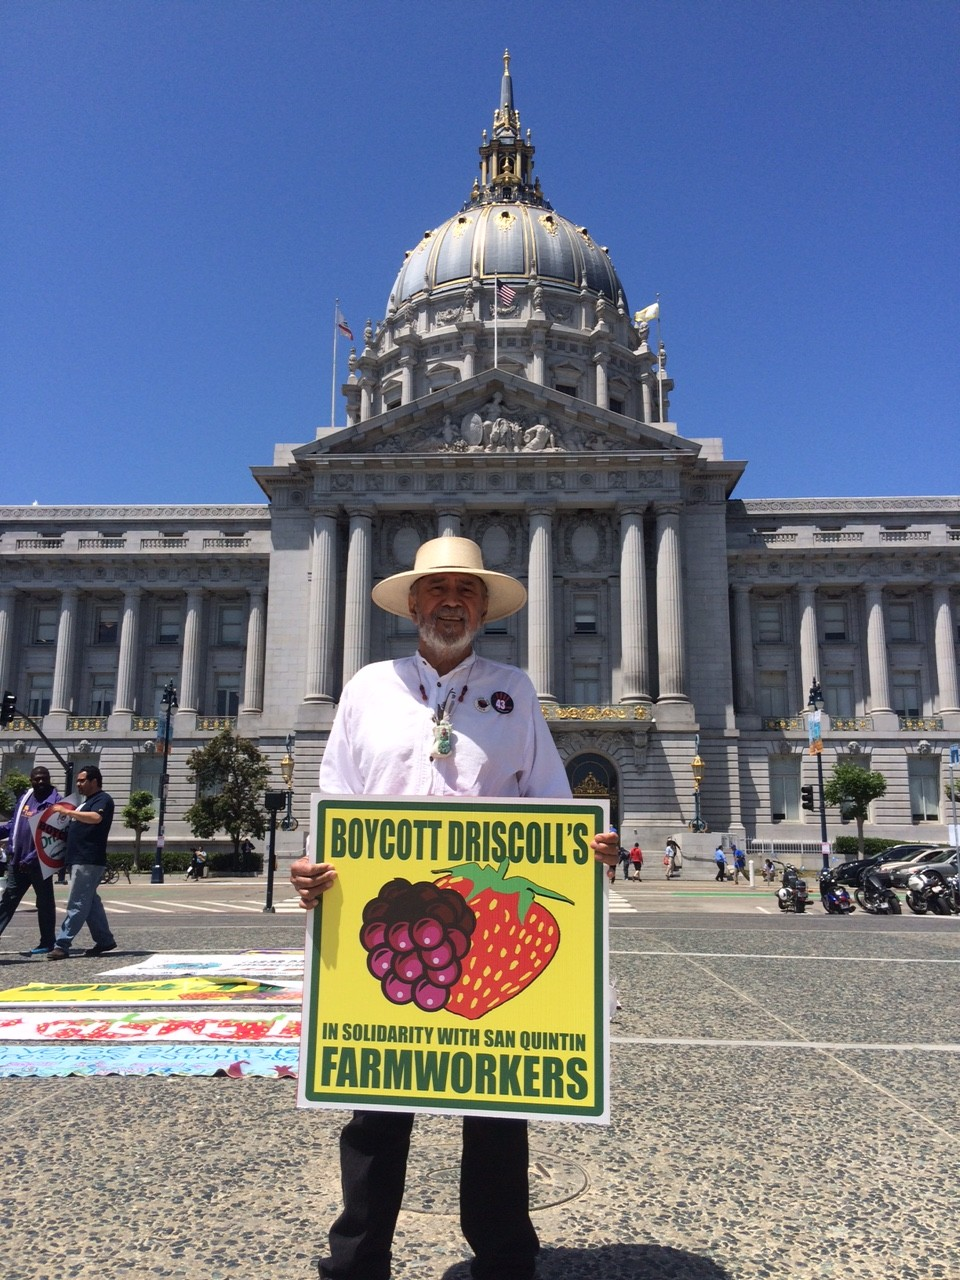 Labor Rights Activists Gather in Support of International Boycott of Driscoll's Strawberries